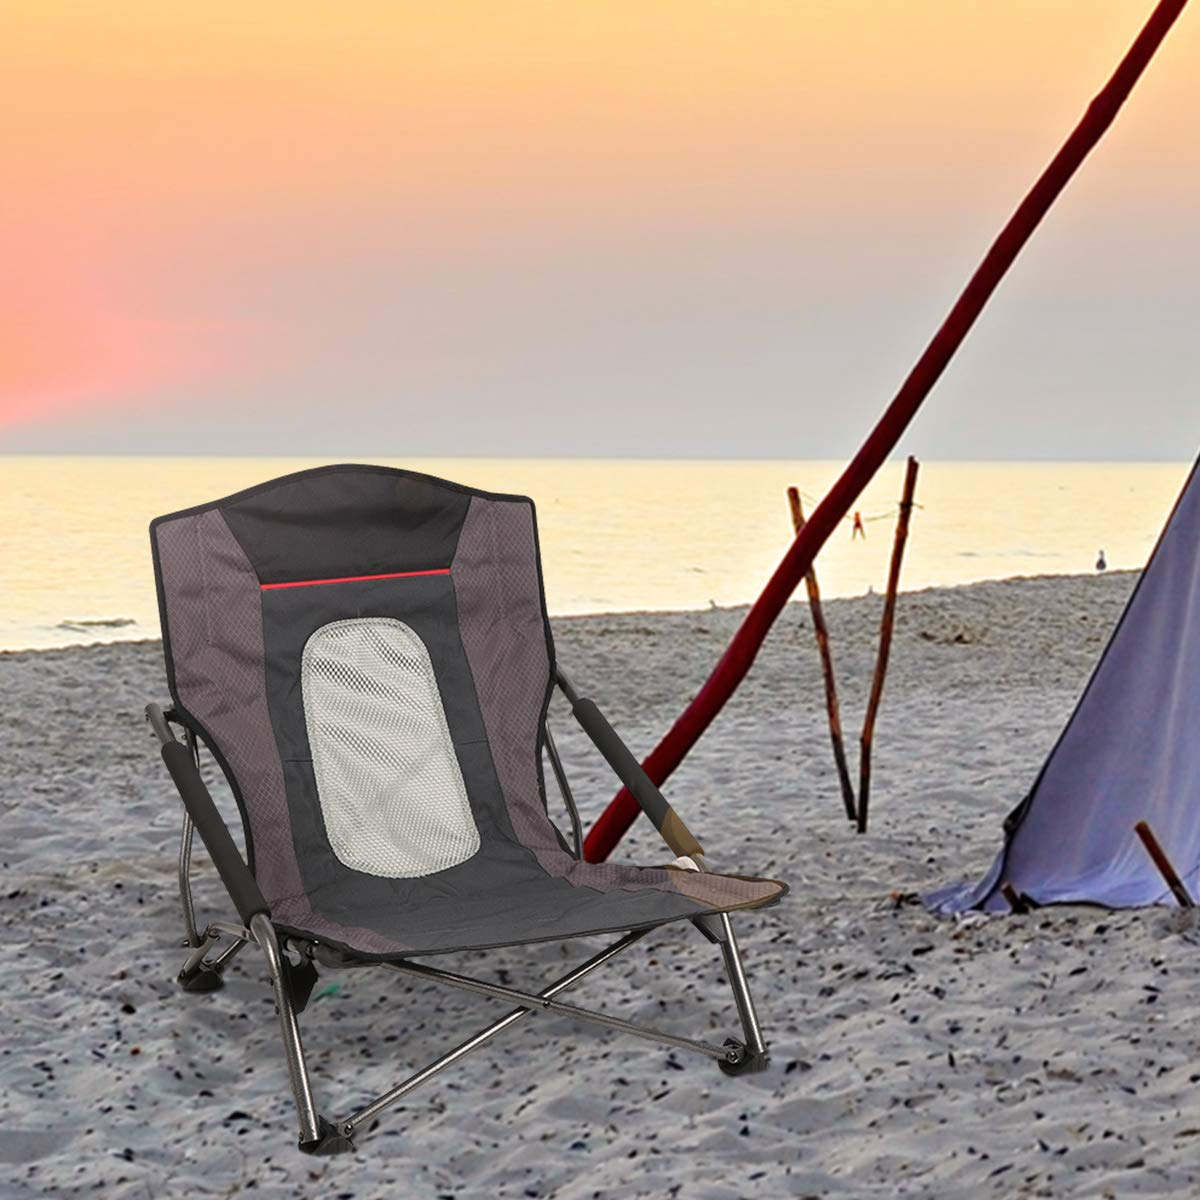 PORTAL Low Beach Camp Chair Folding Compact Picnic Concert Festival Chair with Carry Bag